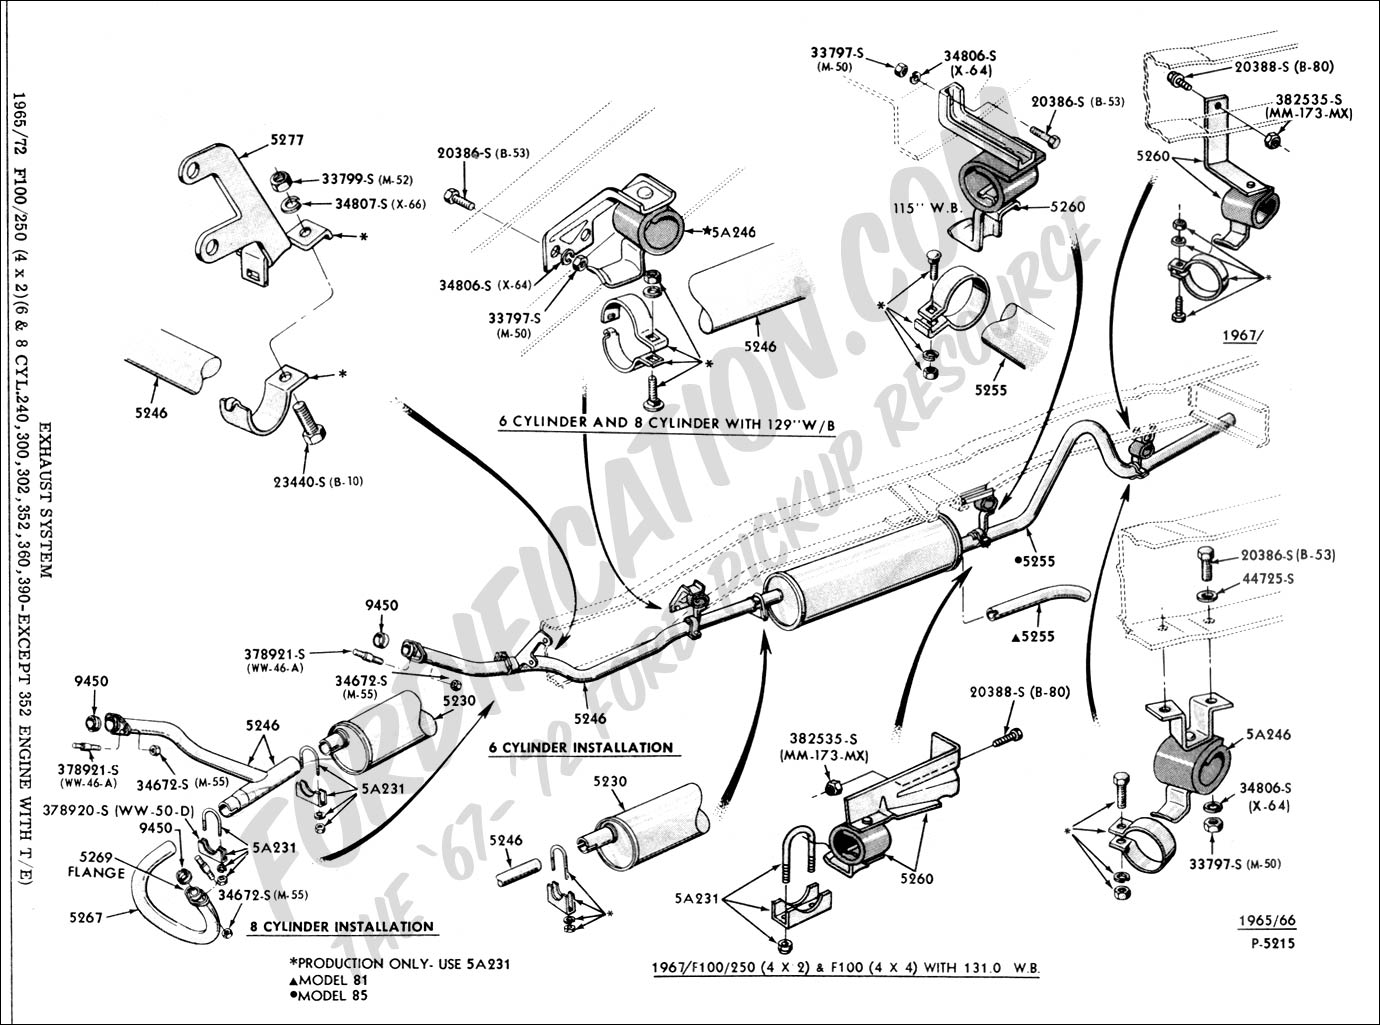 2005 Toyota 4runner Radio Wiring Diagram Celica Car Stereo Radiobuzz Snapshoot Heavenly 2001 Sequoia Jbl Automotive 0 together with 2002 Subaru Engine Parts moreover 153324 2014 Parts Diagrams Service Manual also WiringByColor additionally Wiring Diagram For Ford F150 Starter Solenoid. on 2011 ford f150 alternator